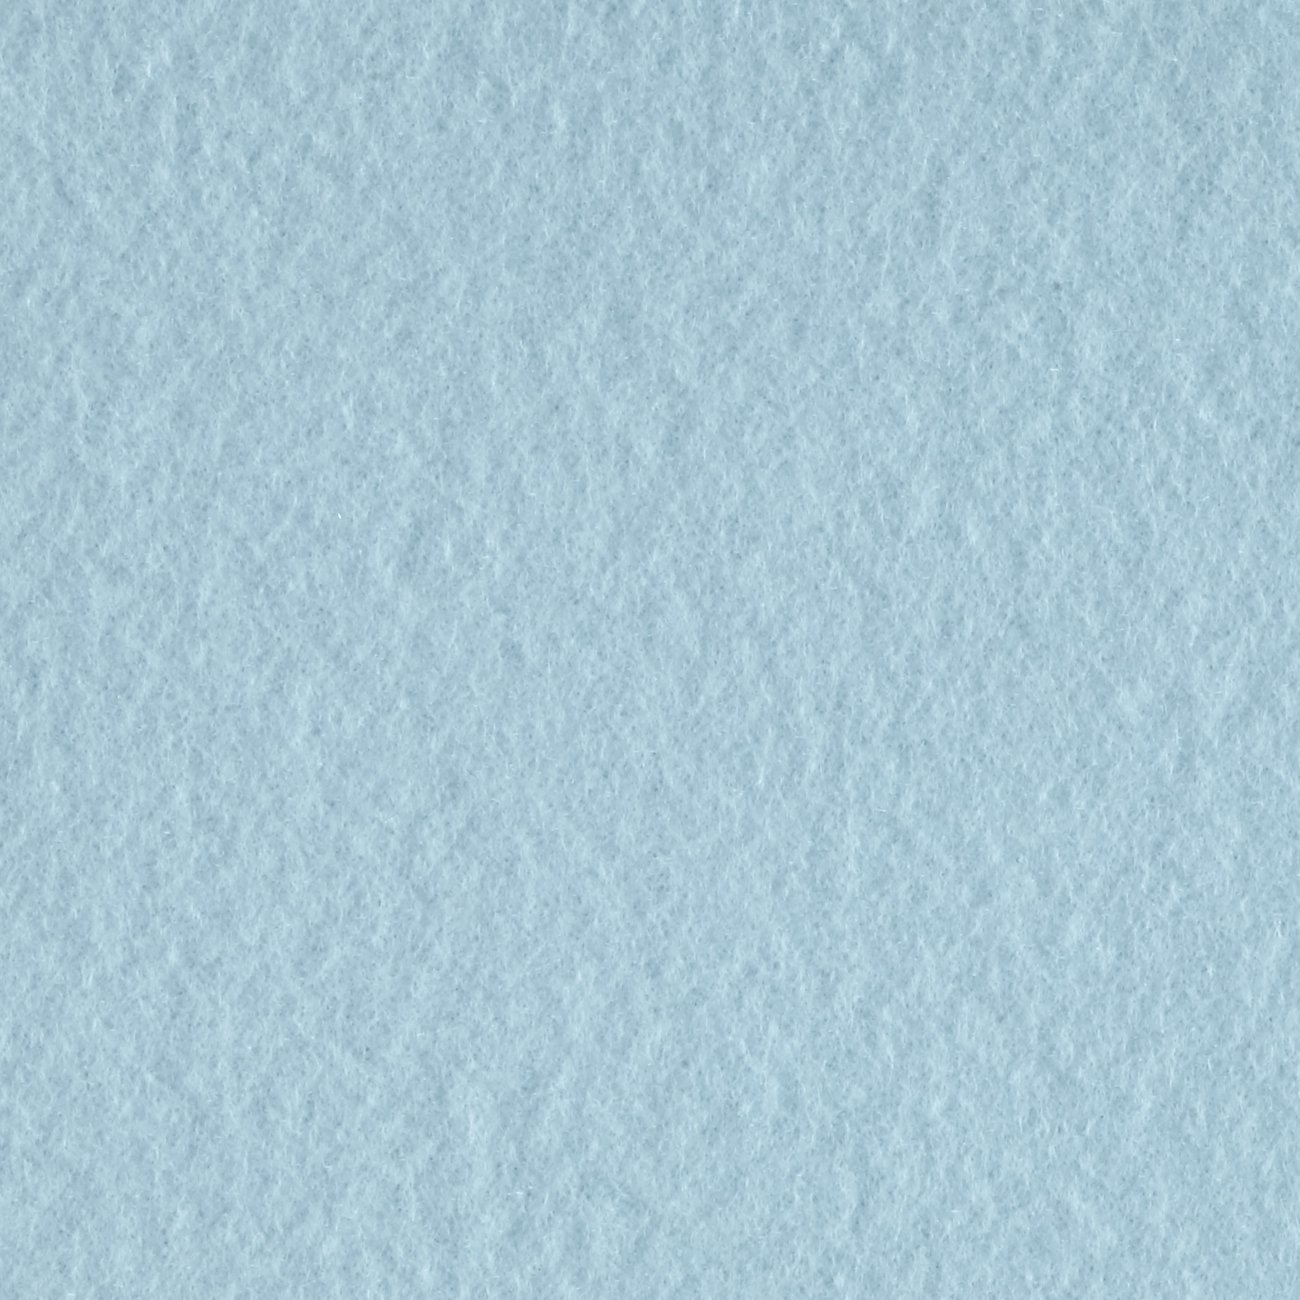 Newcastle Fabrics Polar Fleece Solid Sky Blue Yard 0441375